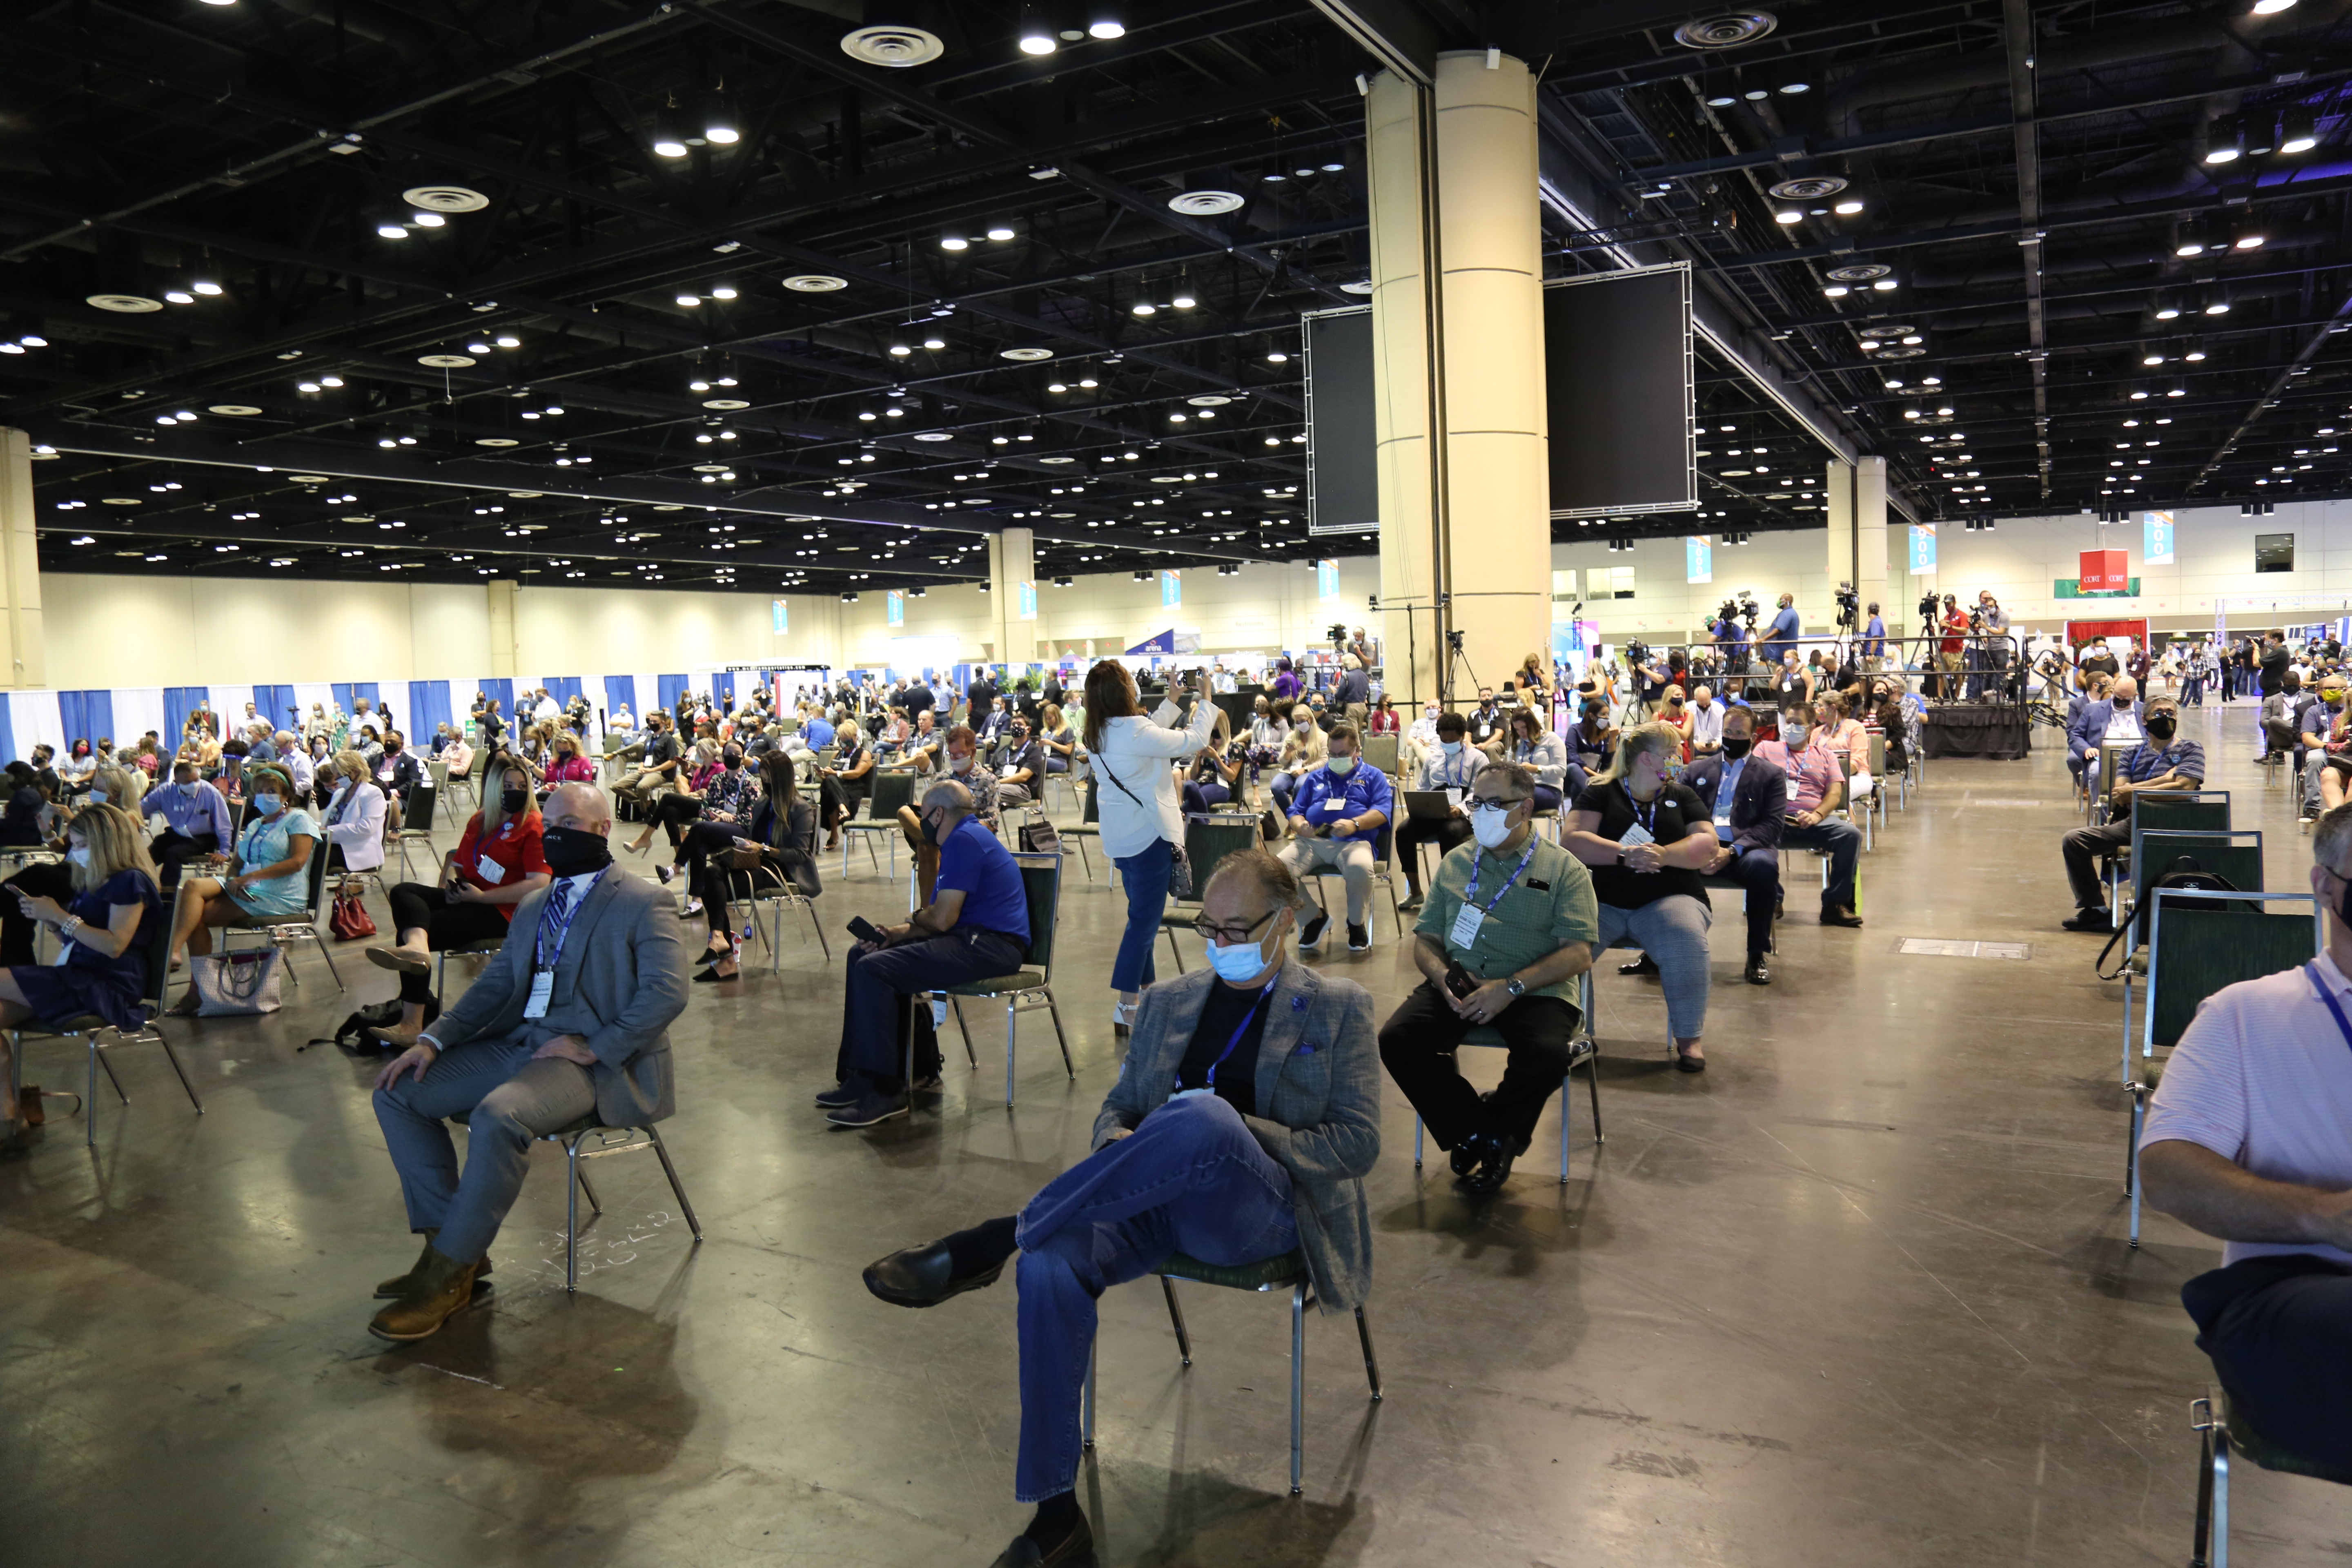 Physically distanced seating in the General Session Area at the Together Again Expo